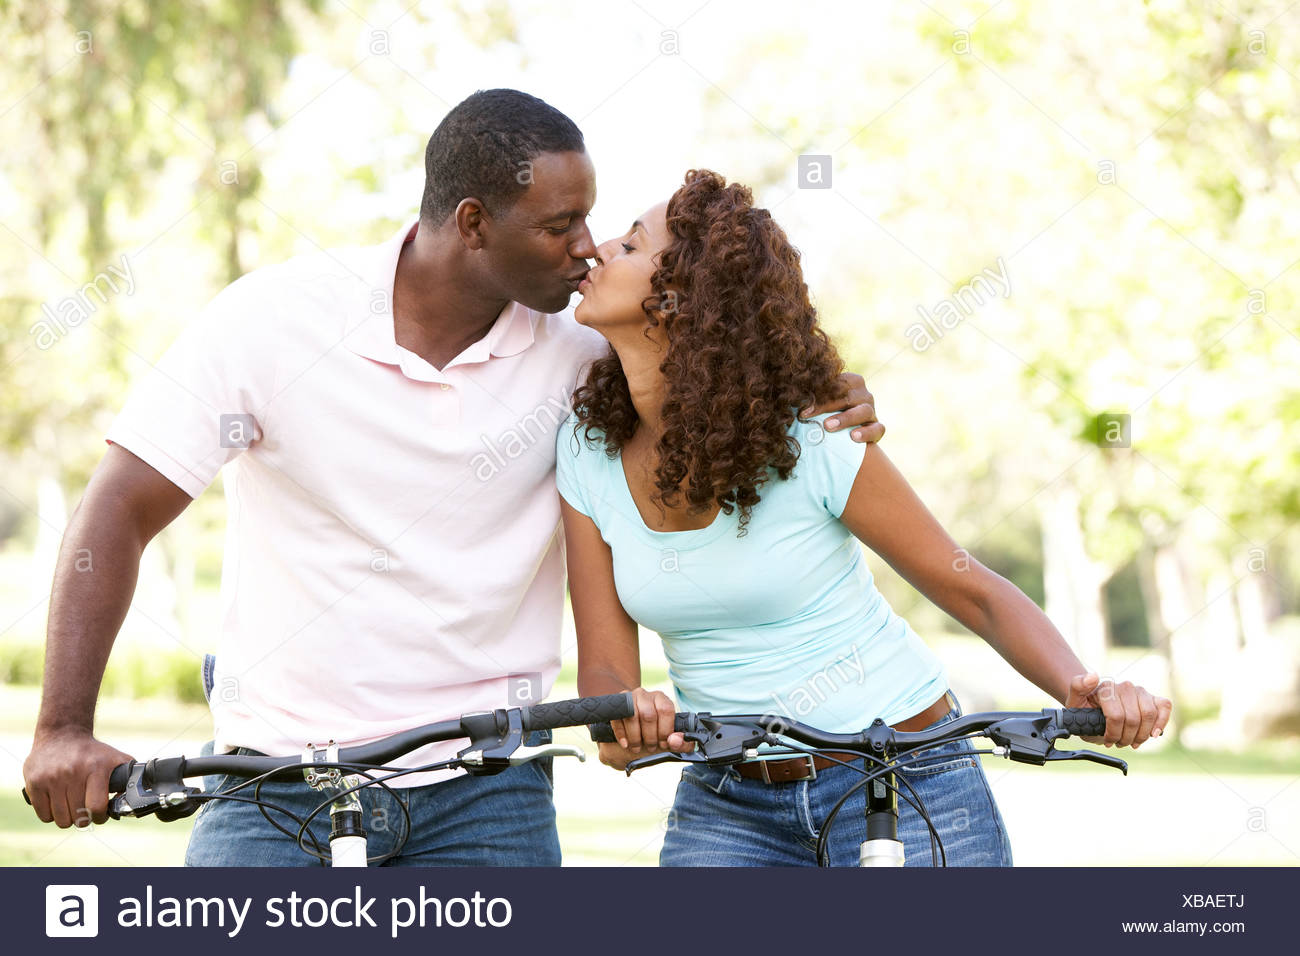 Couple On Cycle Ride in Park - Stock Image